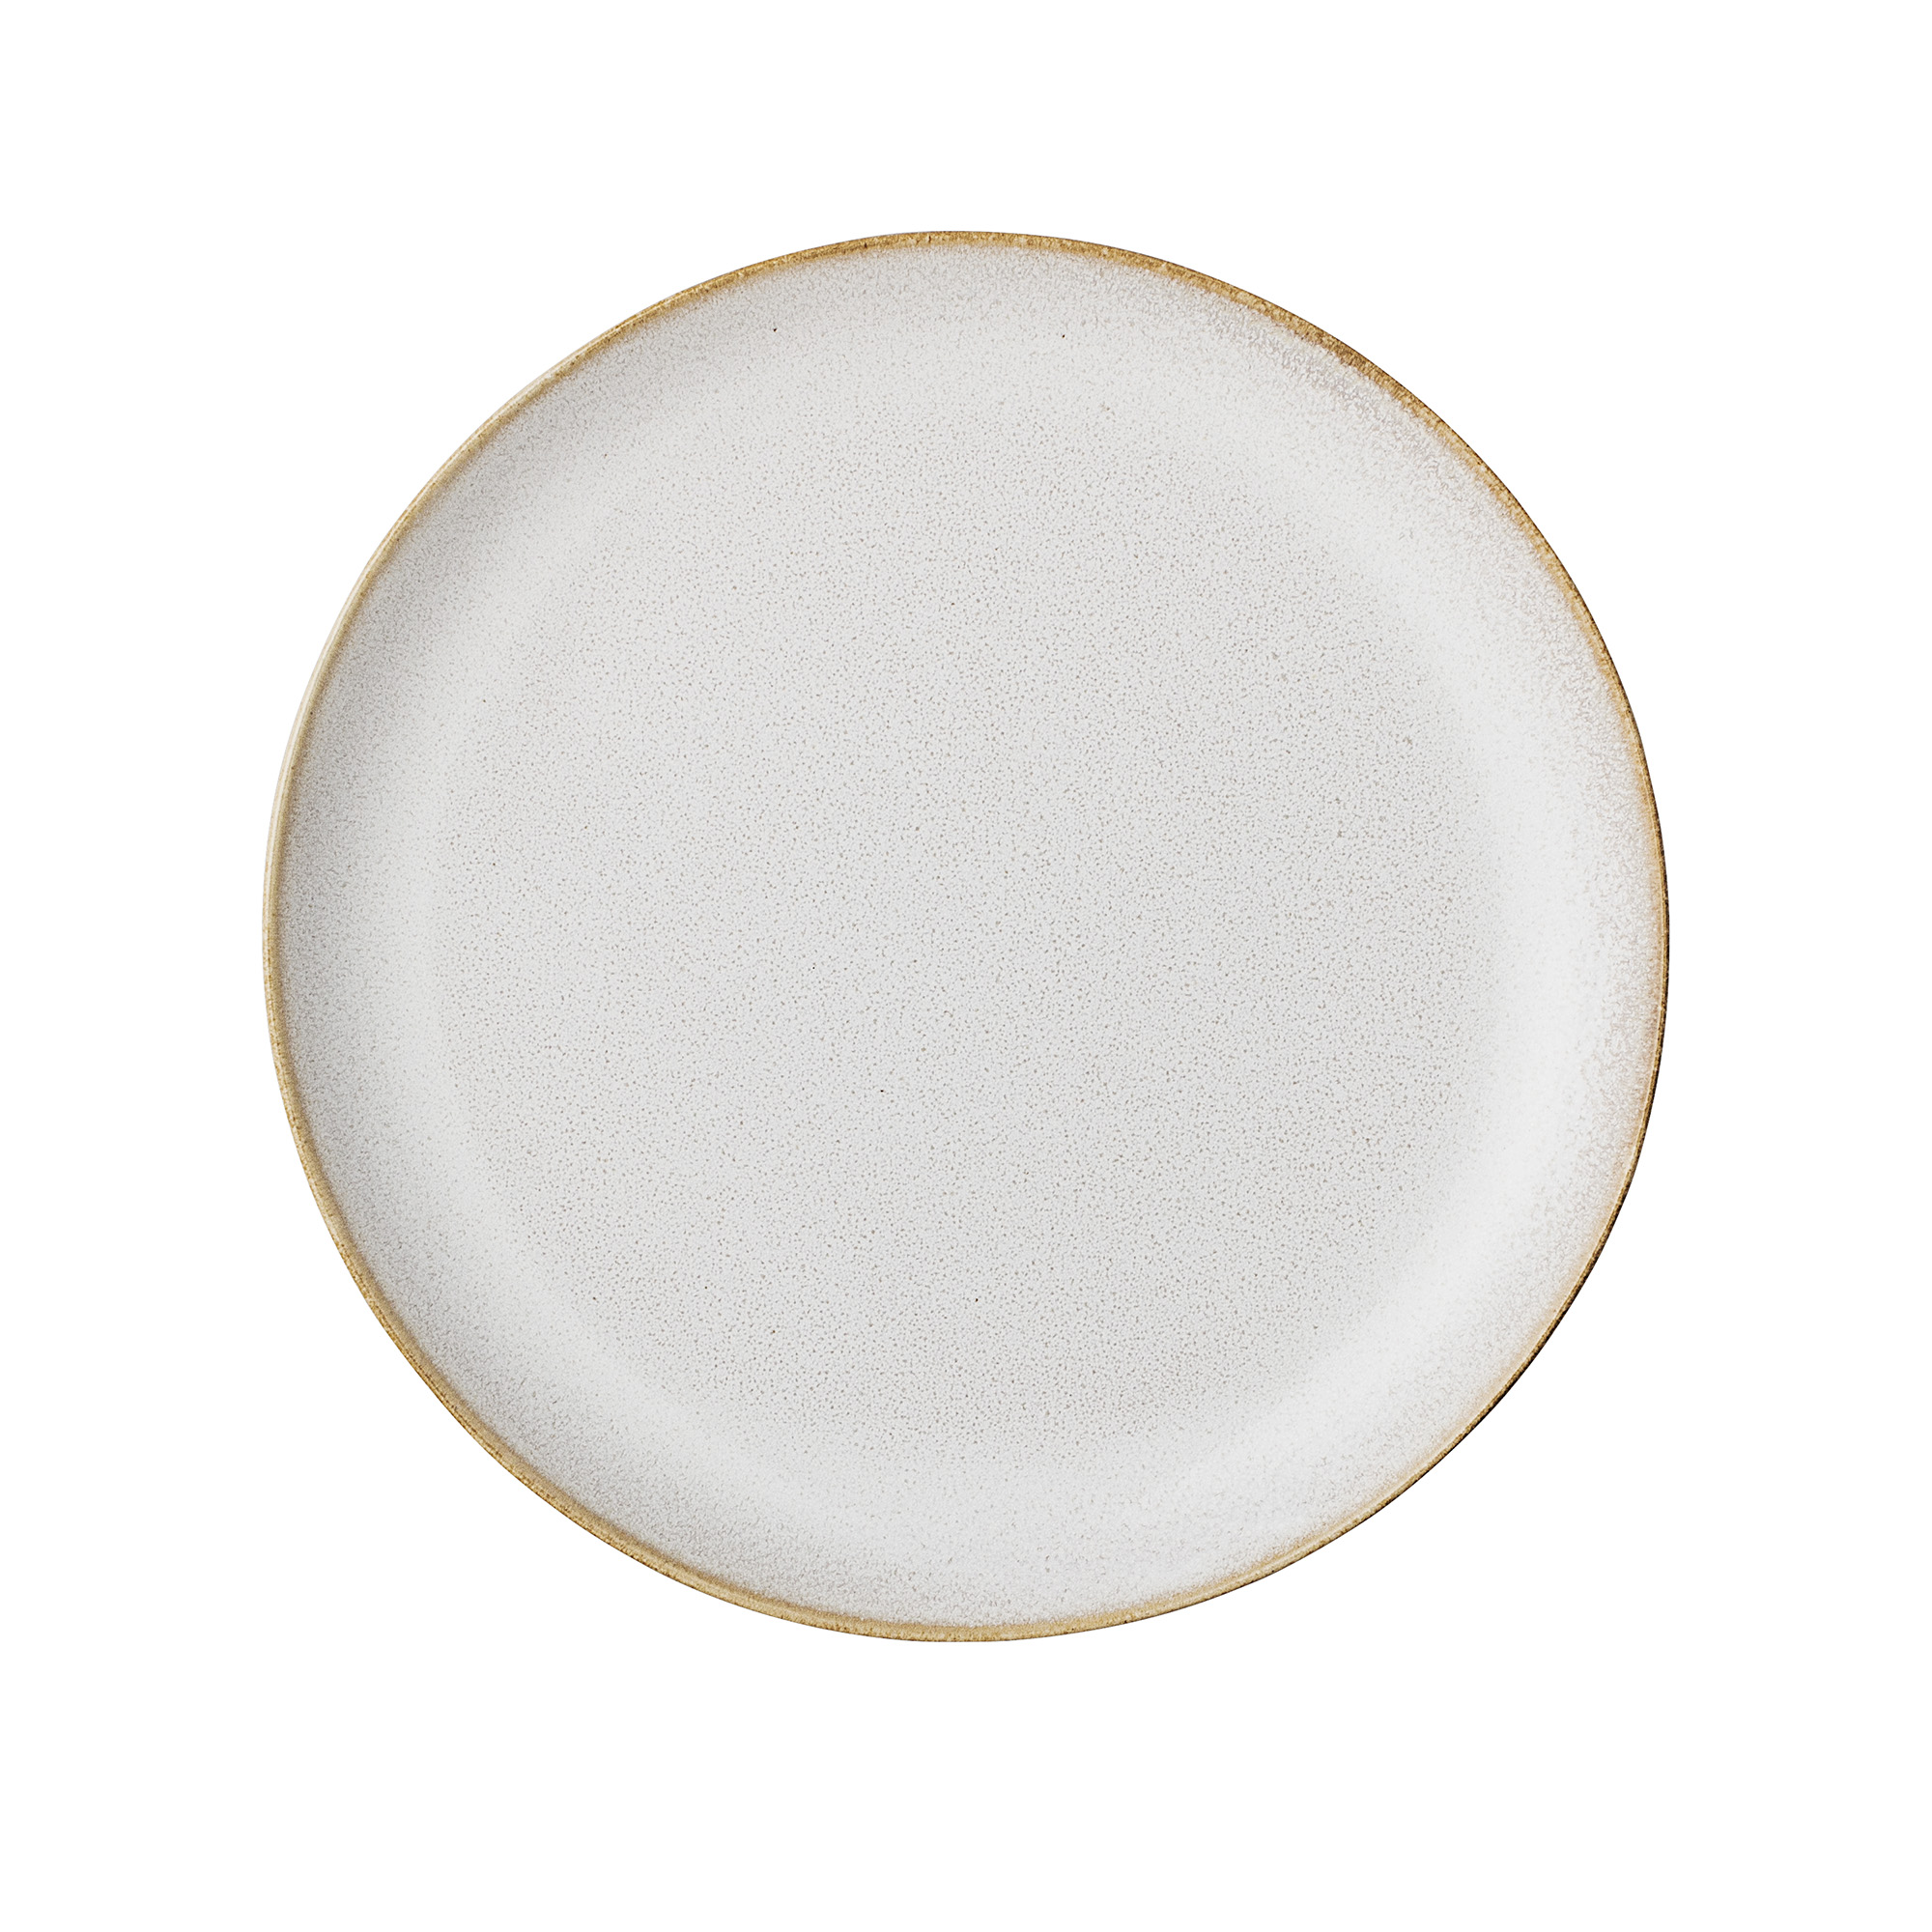 #012 Cream Stoneware Side Plate   20cm Hire Price - £2.60 Minimum Order 10 Current Stock Available 60